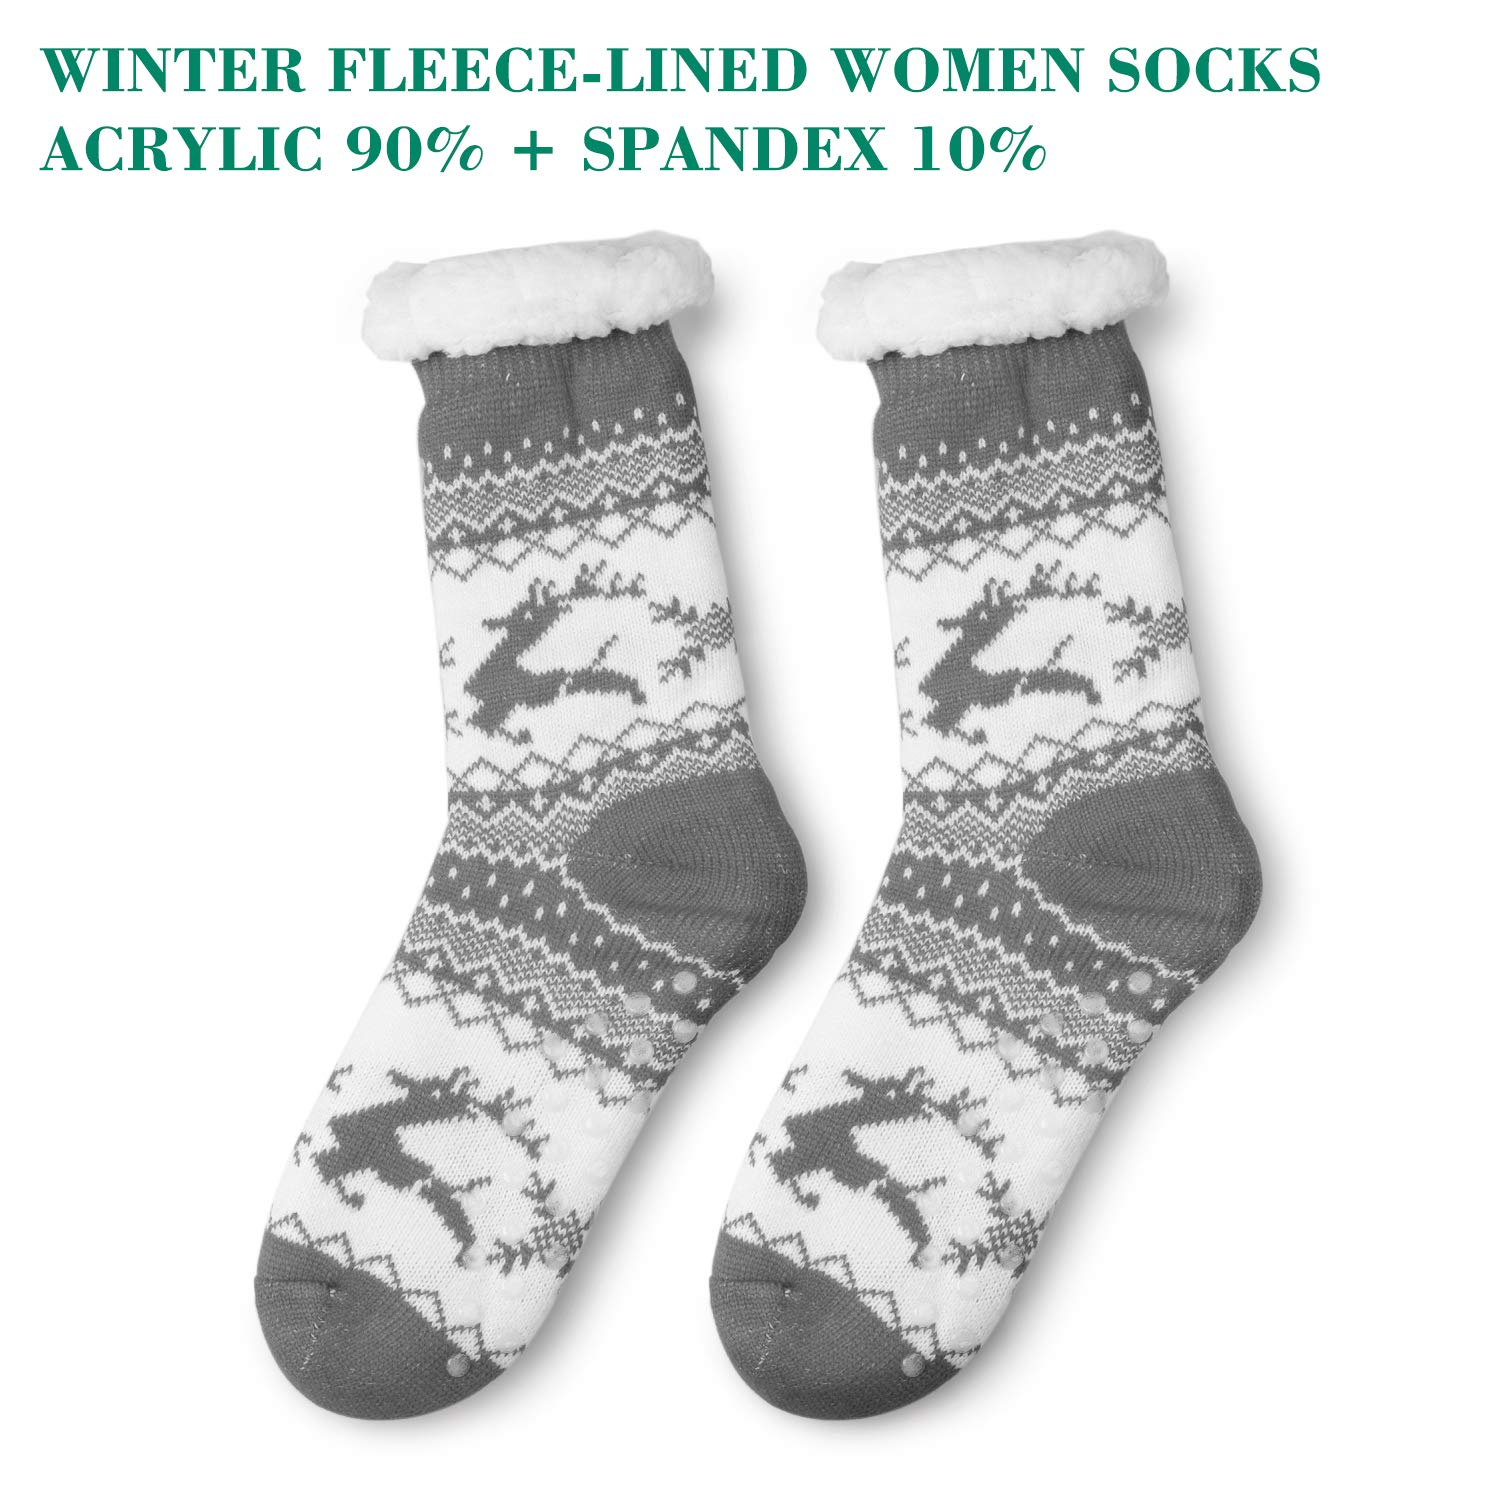 SEVENS 2 Pairs Women\'s Socks Winter Super Soft Cozy Fuzzy Christmas Gift Slipper Socks With Grippers (Black and Grey)